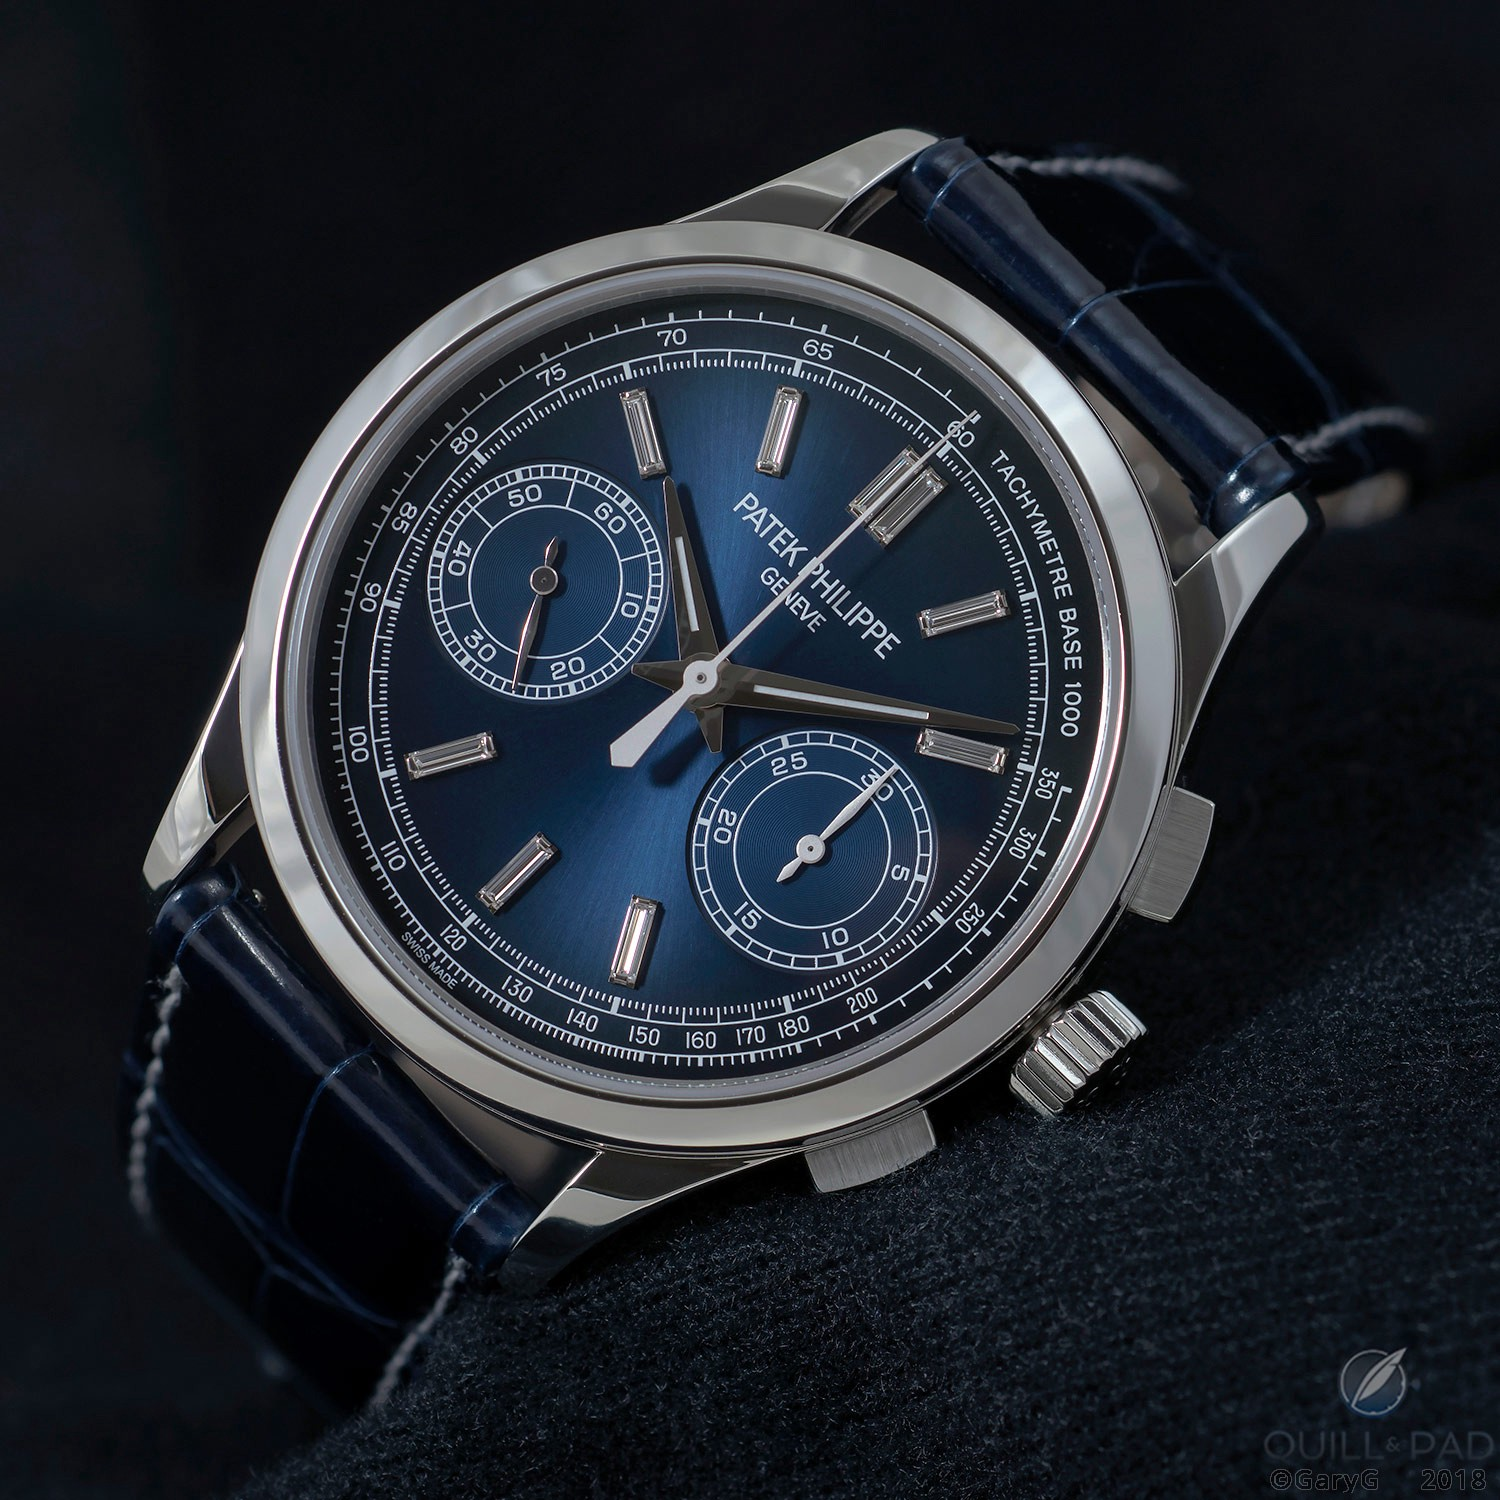 The new generation: Patek Philippe Reference 5170P in platinum with diamond indices